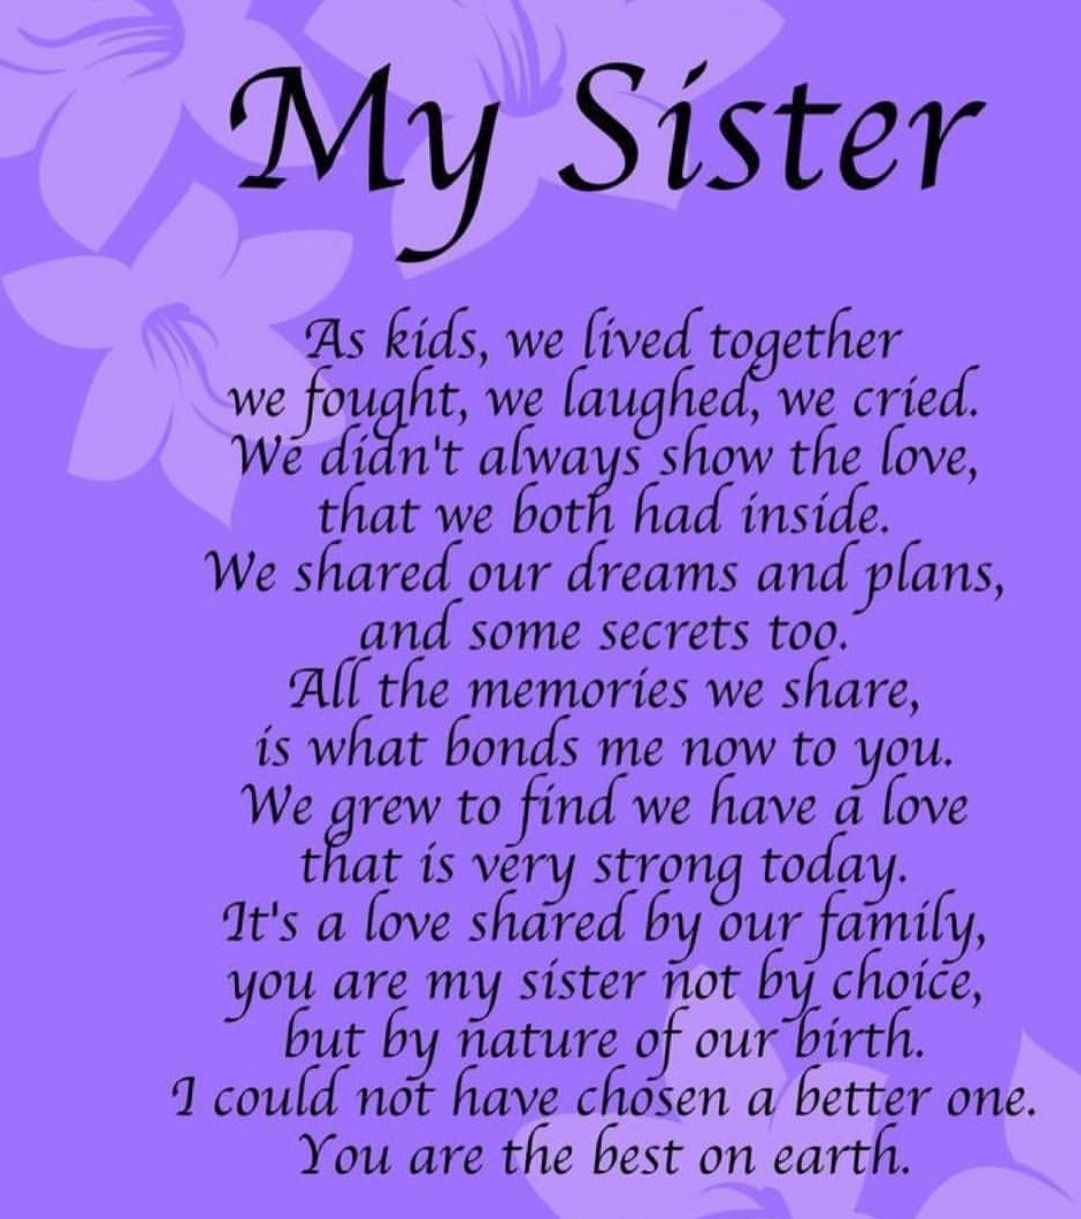 Pin by Grammie Newman on Family Sister poems, Sister